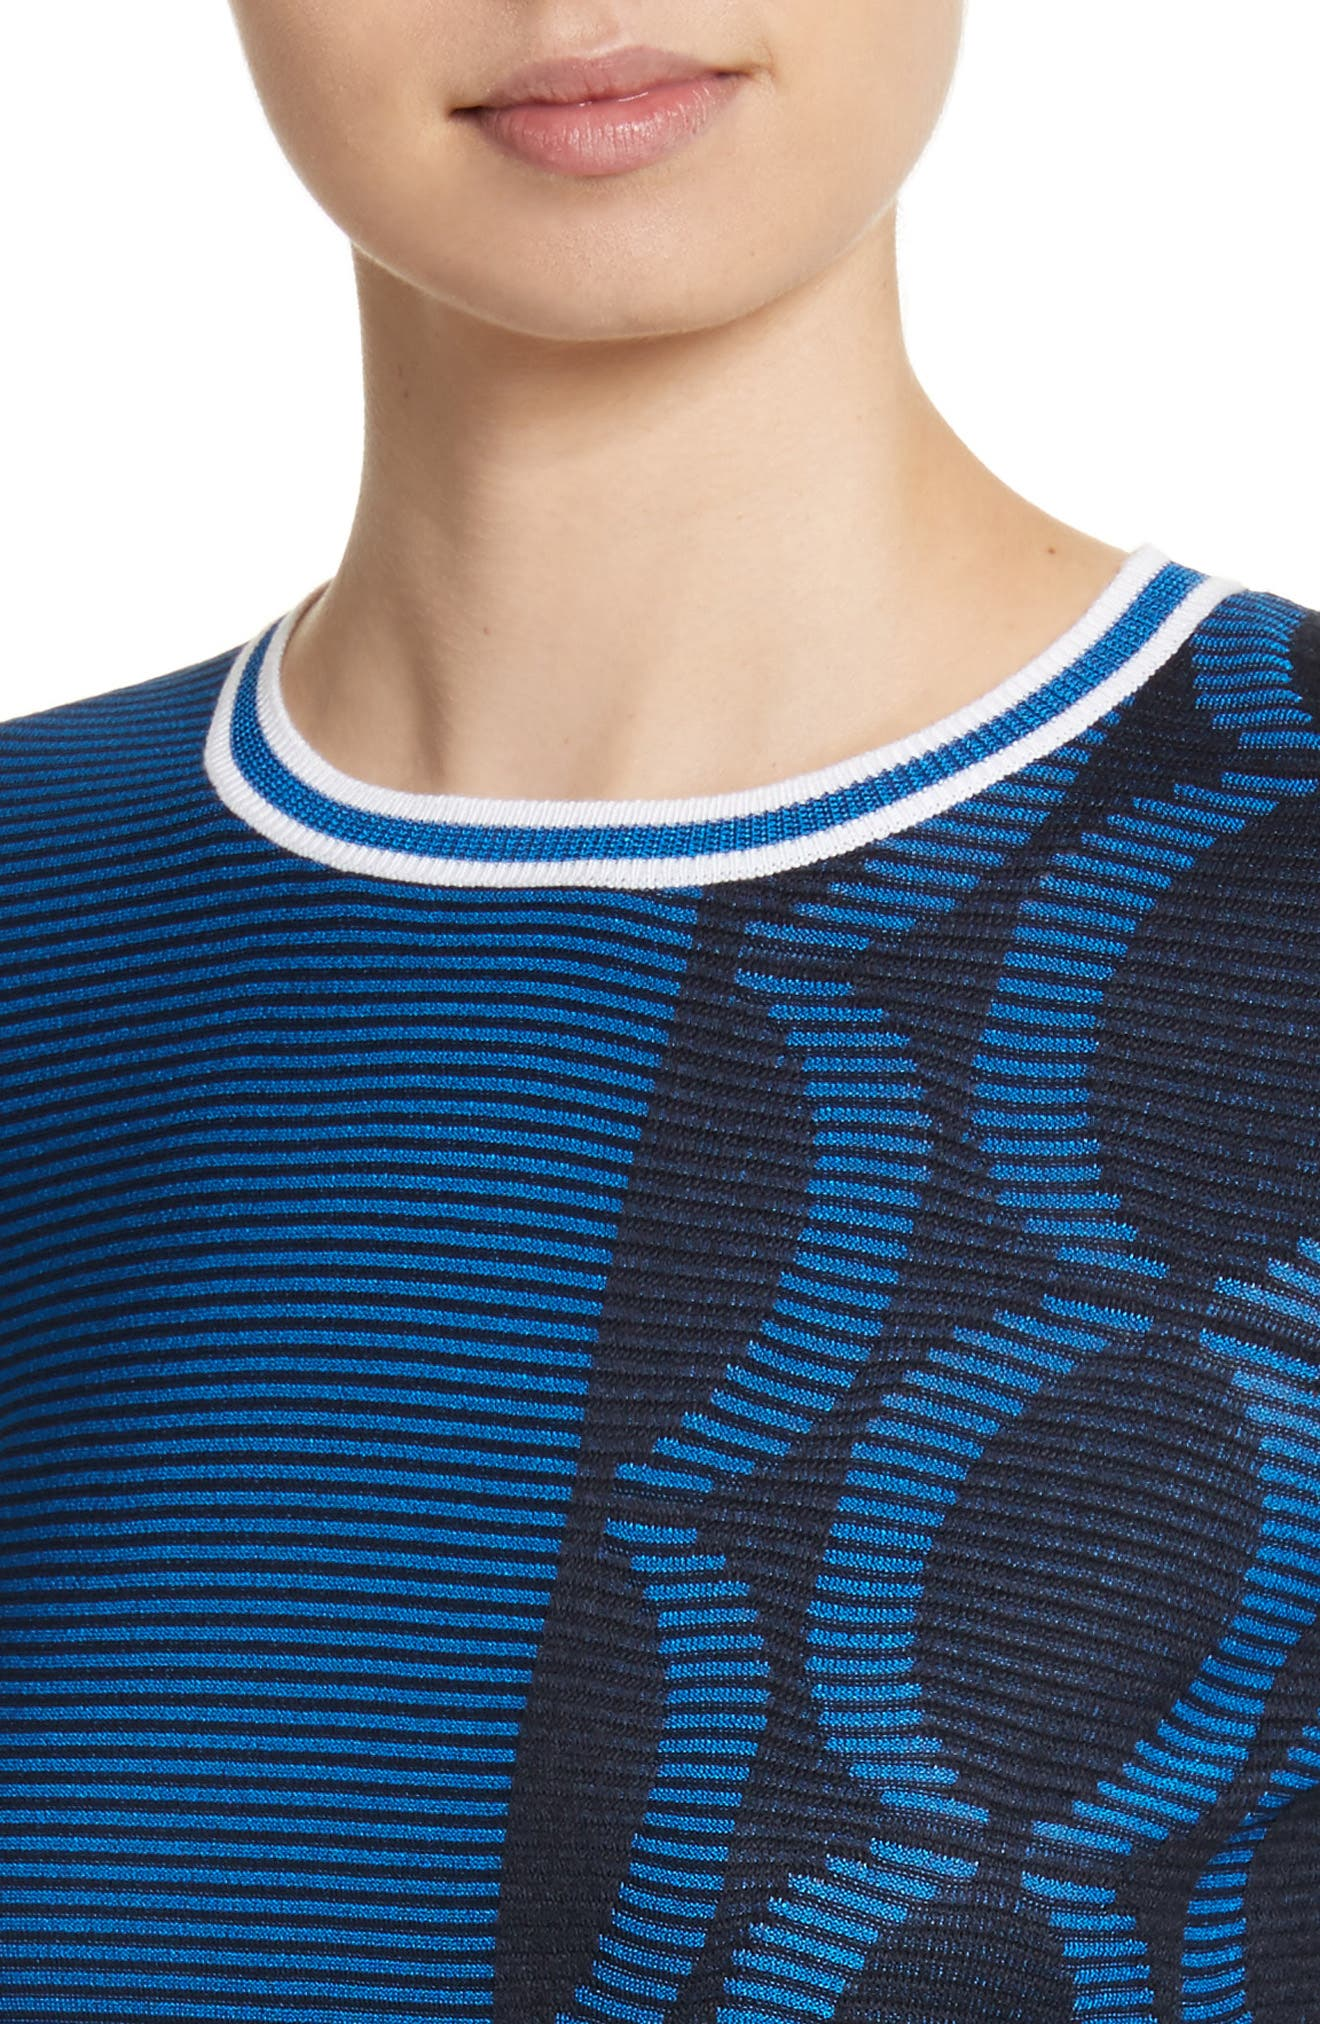 Jacquard Knit Sweater,                             Alternate thumbnail 4, color,                             Navy/ Niagara/ Bianco